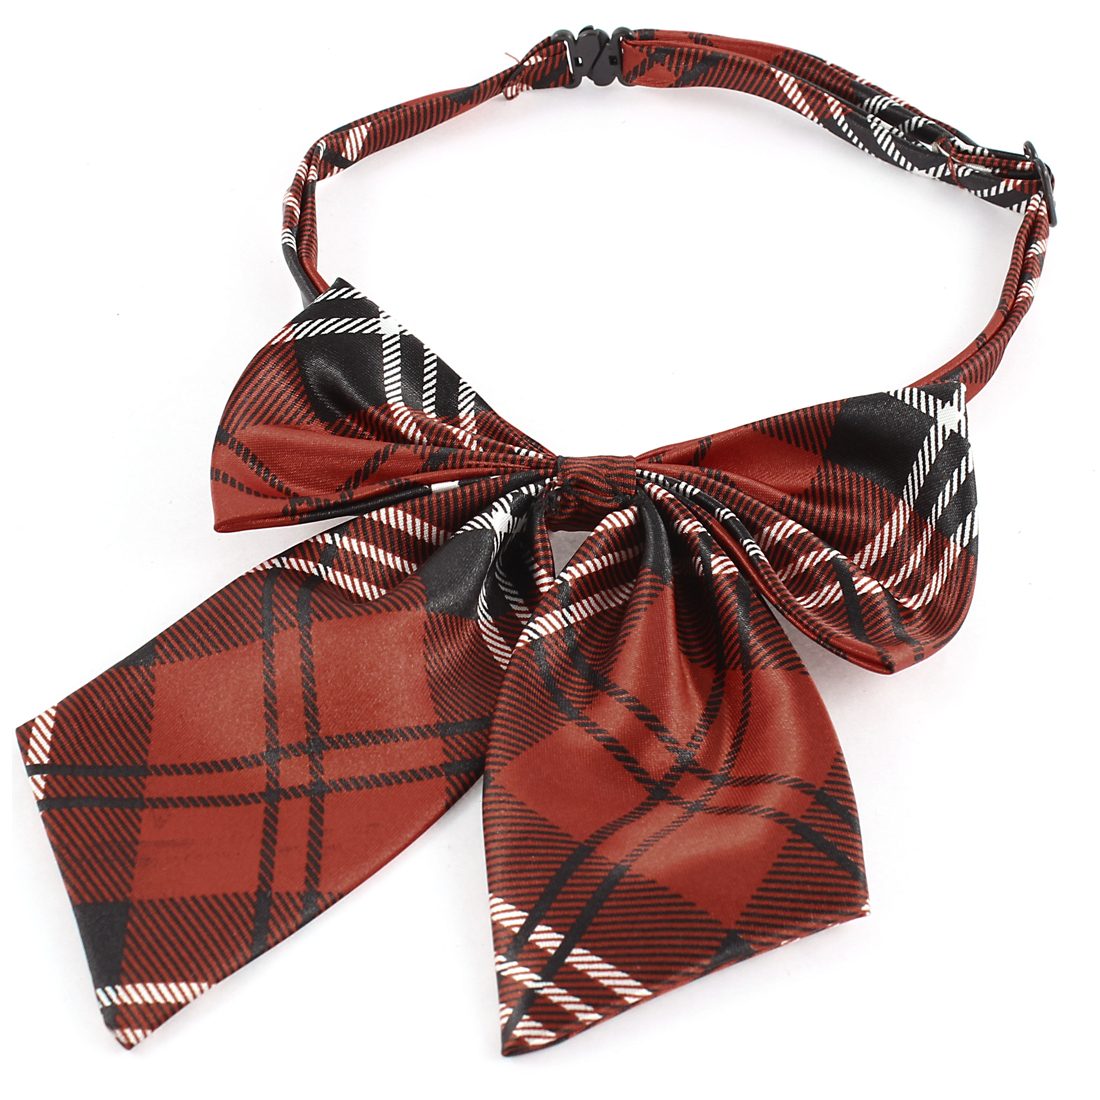 Black Red White Checked Print Pet Dog Adjustable Band Belt Plastic Buckle Grooming Necktie